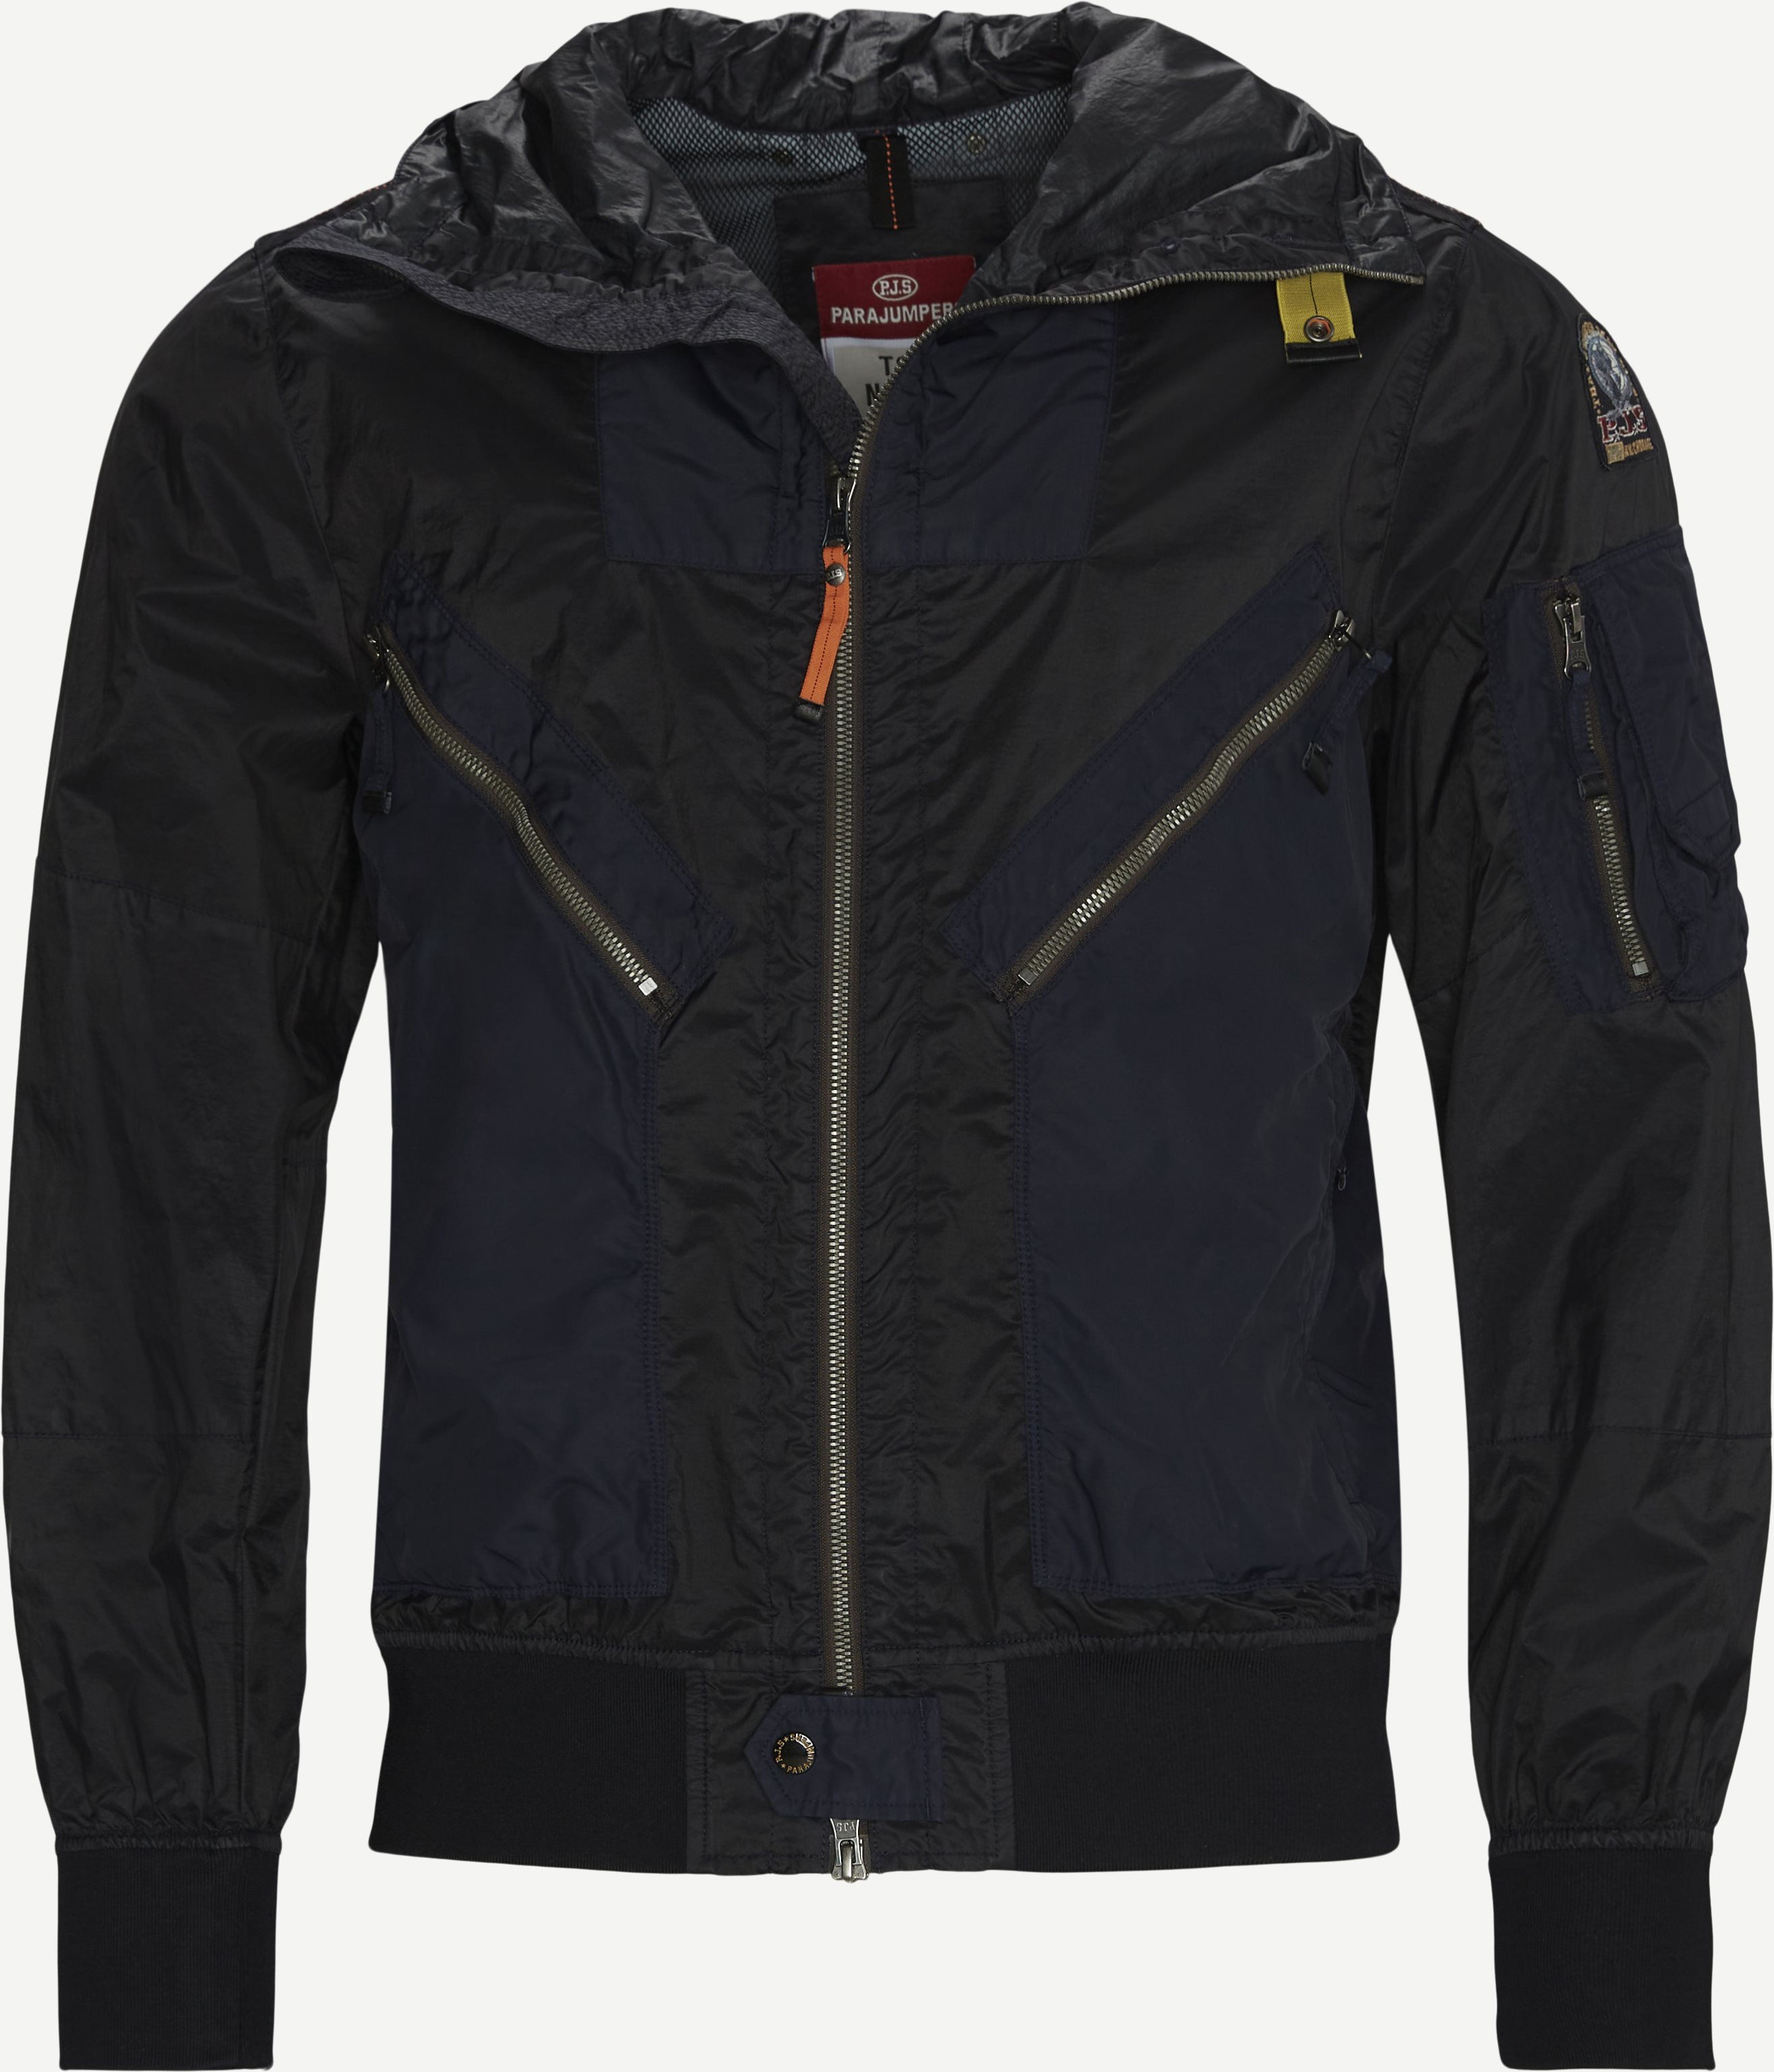 Waco Jacket - Jakker - Regular - Blå